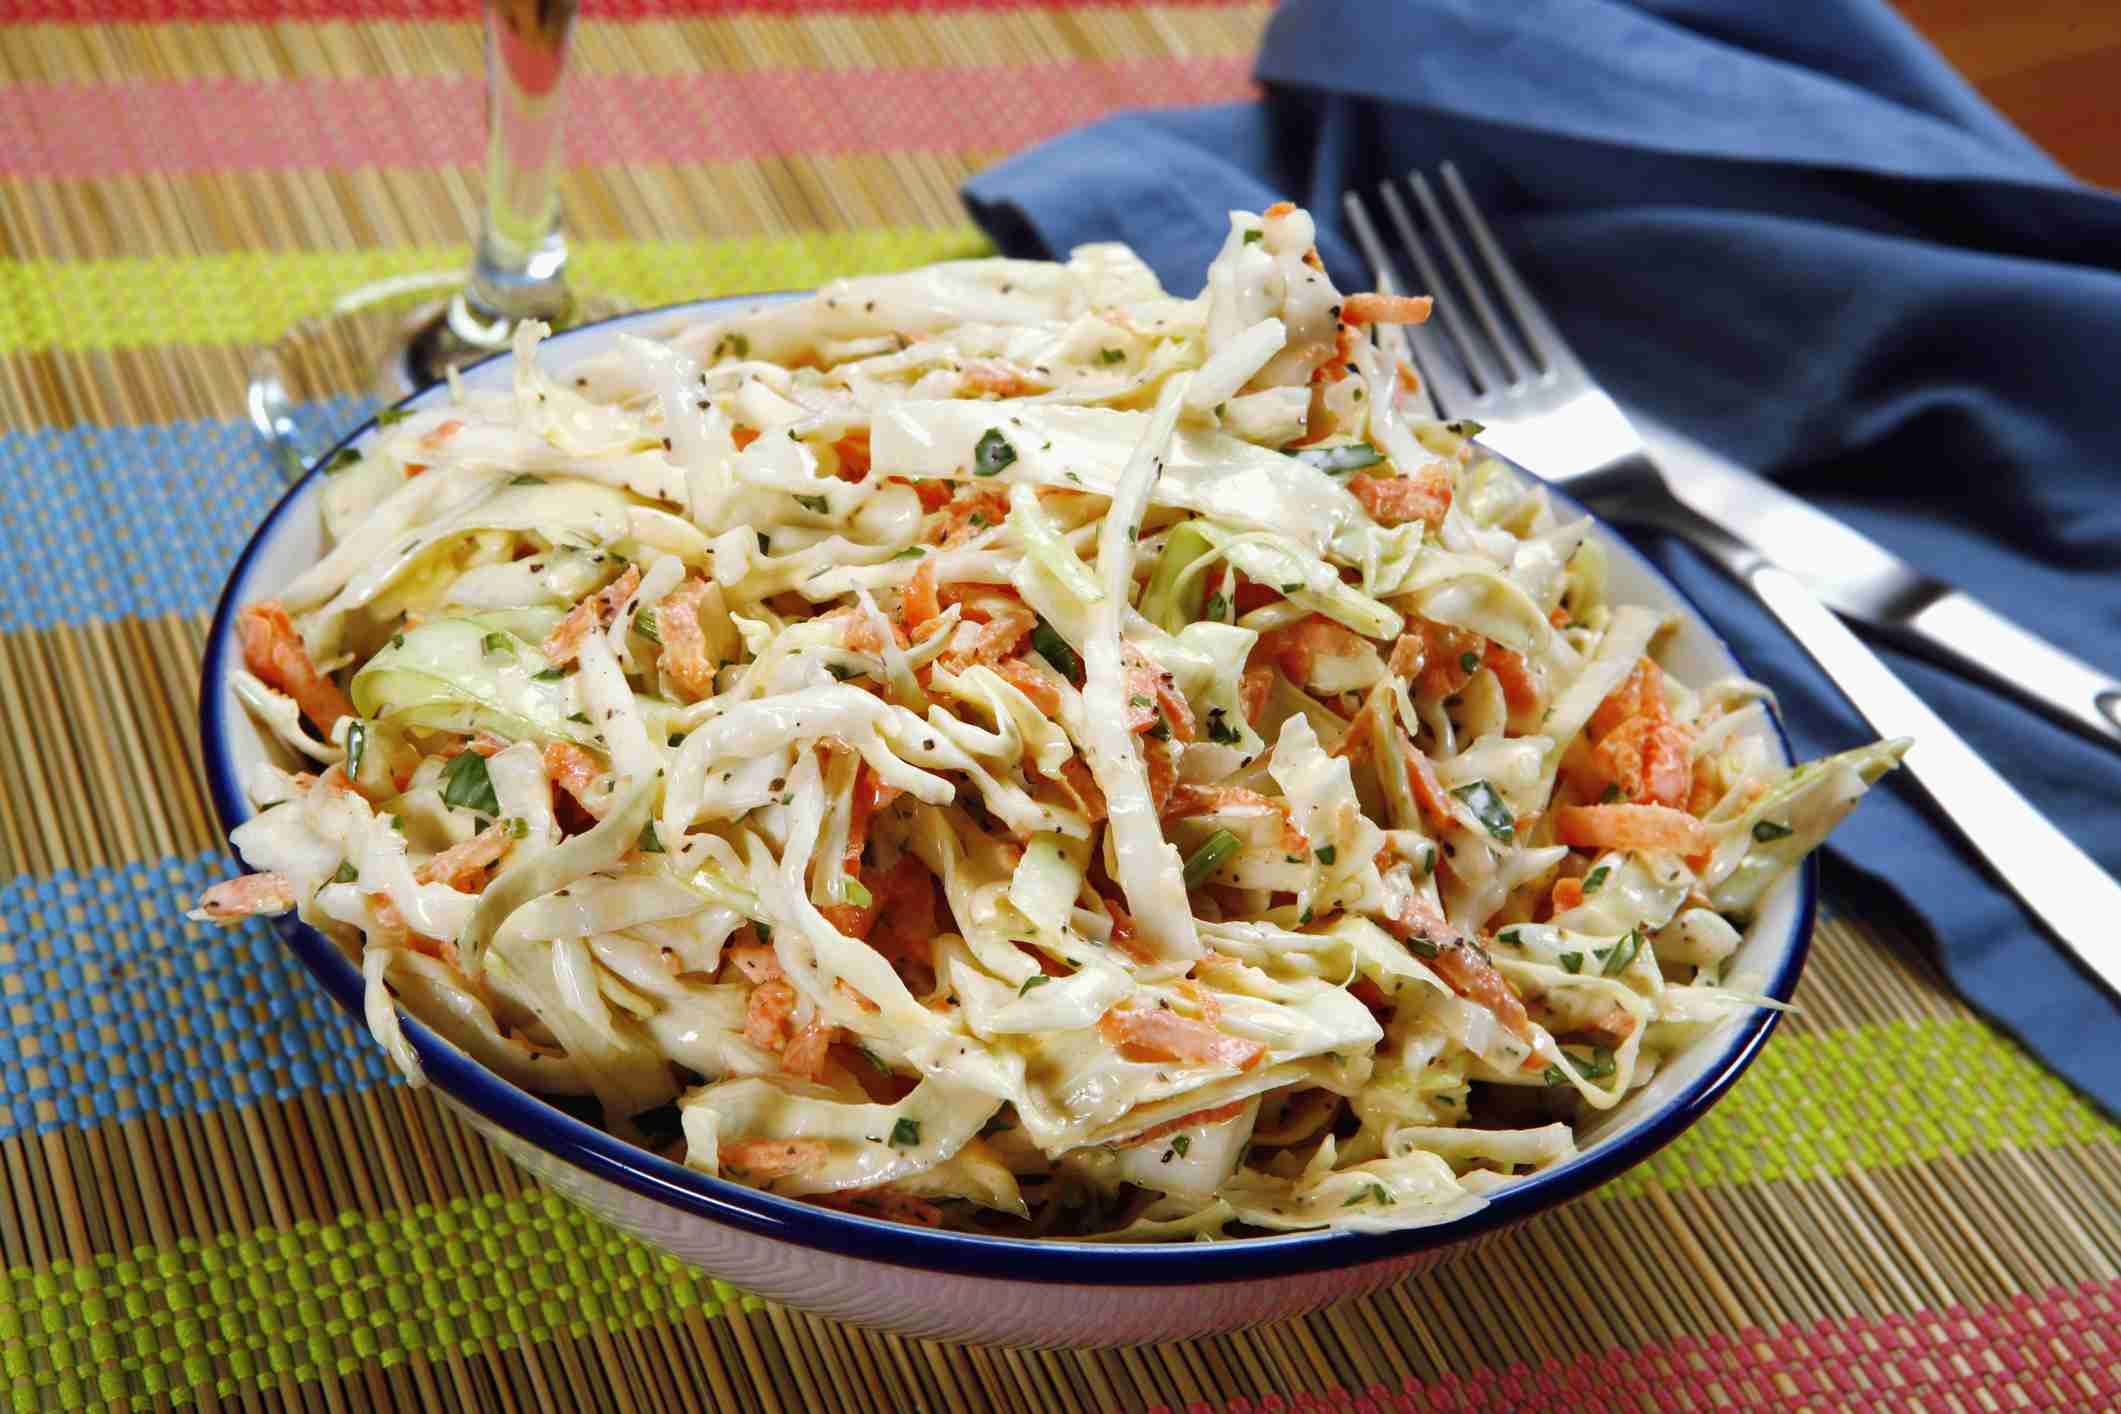 Bowl of coleslaw, elevated view, close up